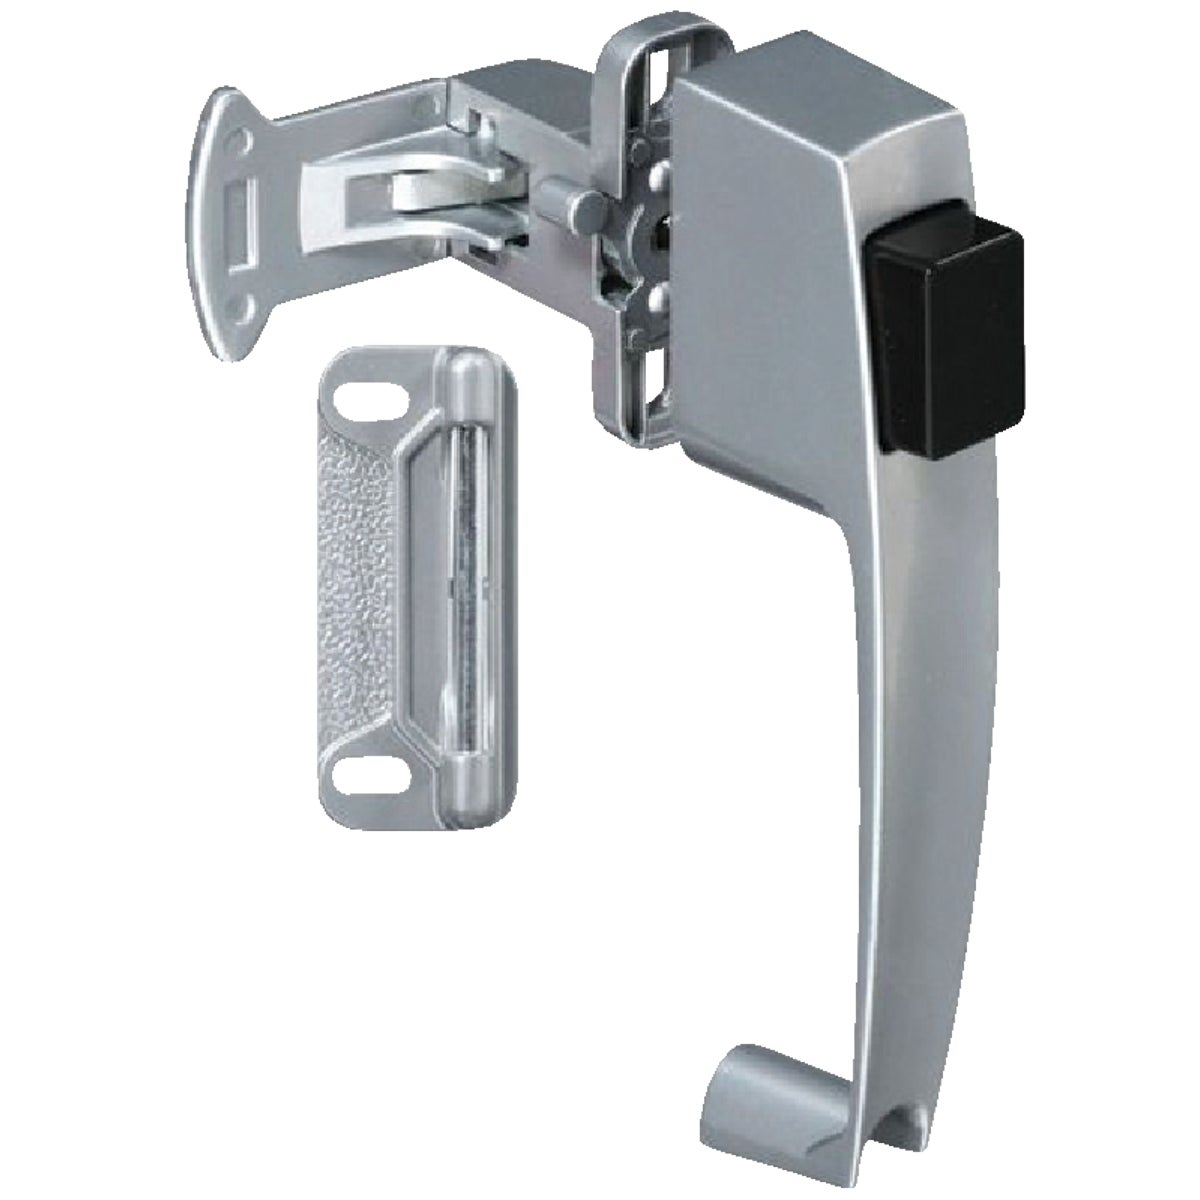 SIL PUSHBTN DOOR LATCH - N185454 by National Mfg Co